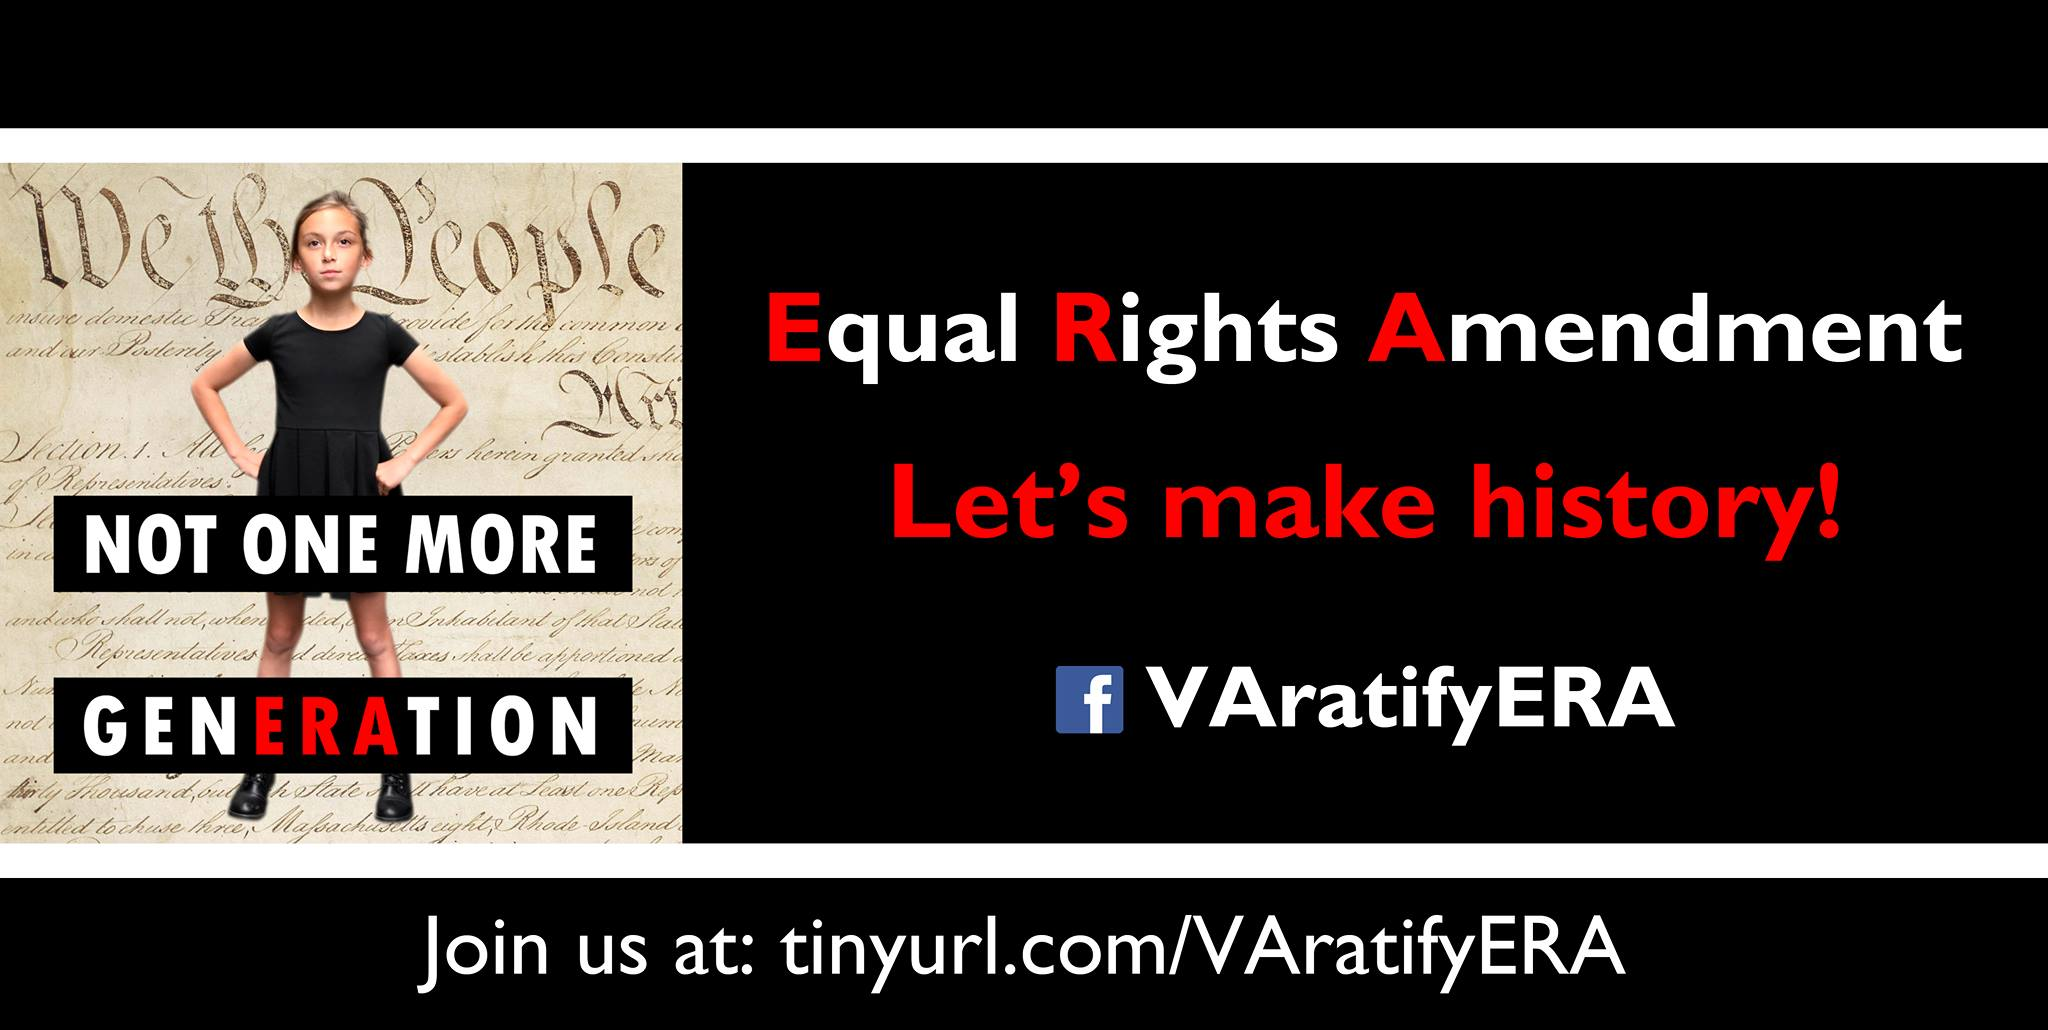 Urge Passage of the Equal Rights Amendment